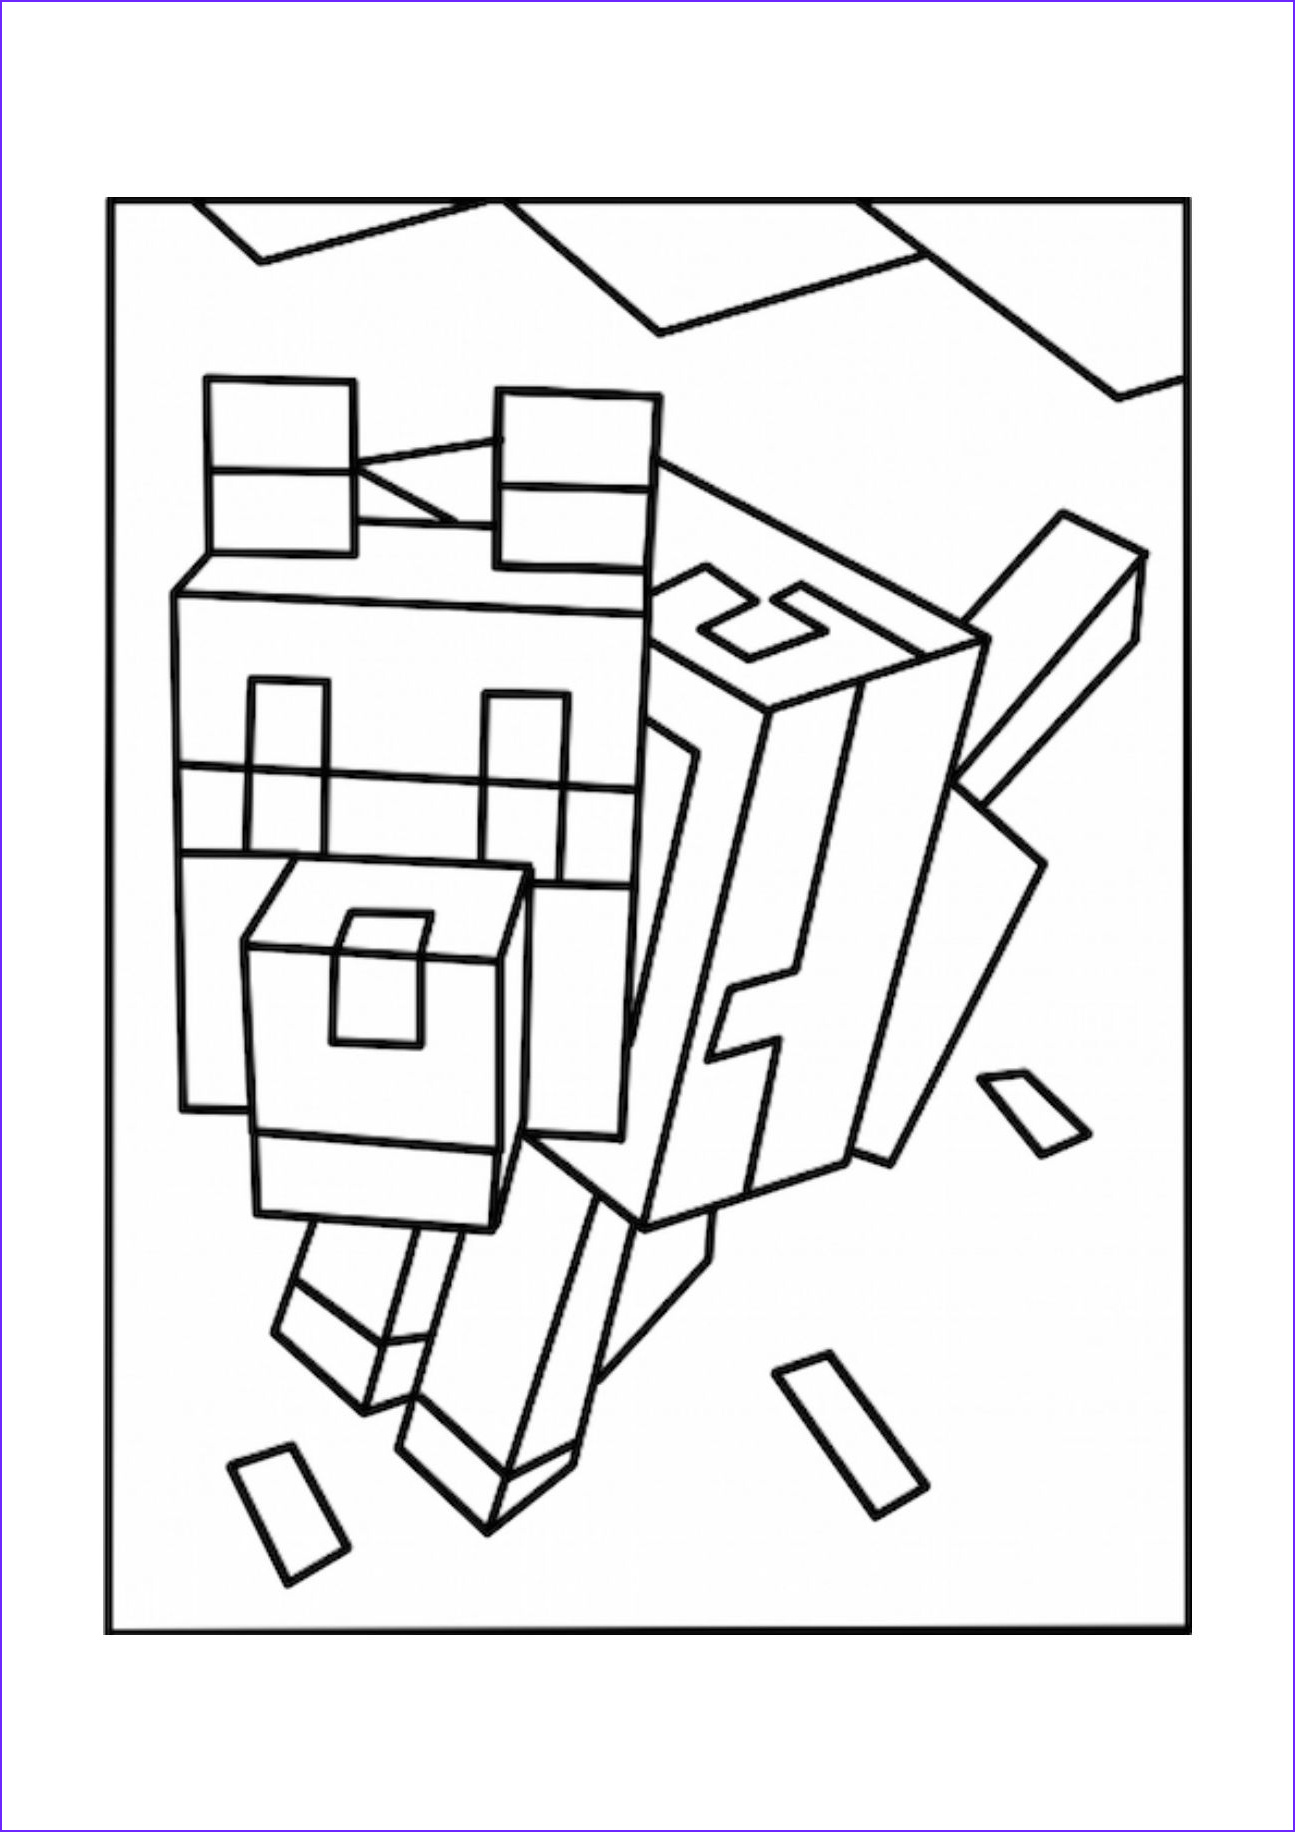 Coloring Page for Minecraft Inspirational Photos Minecraft Coloring Coloring Pages